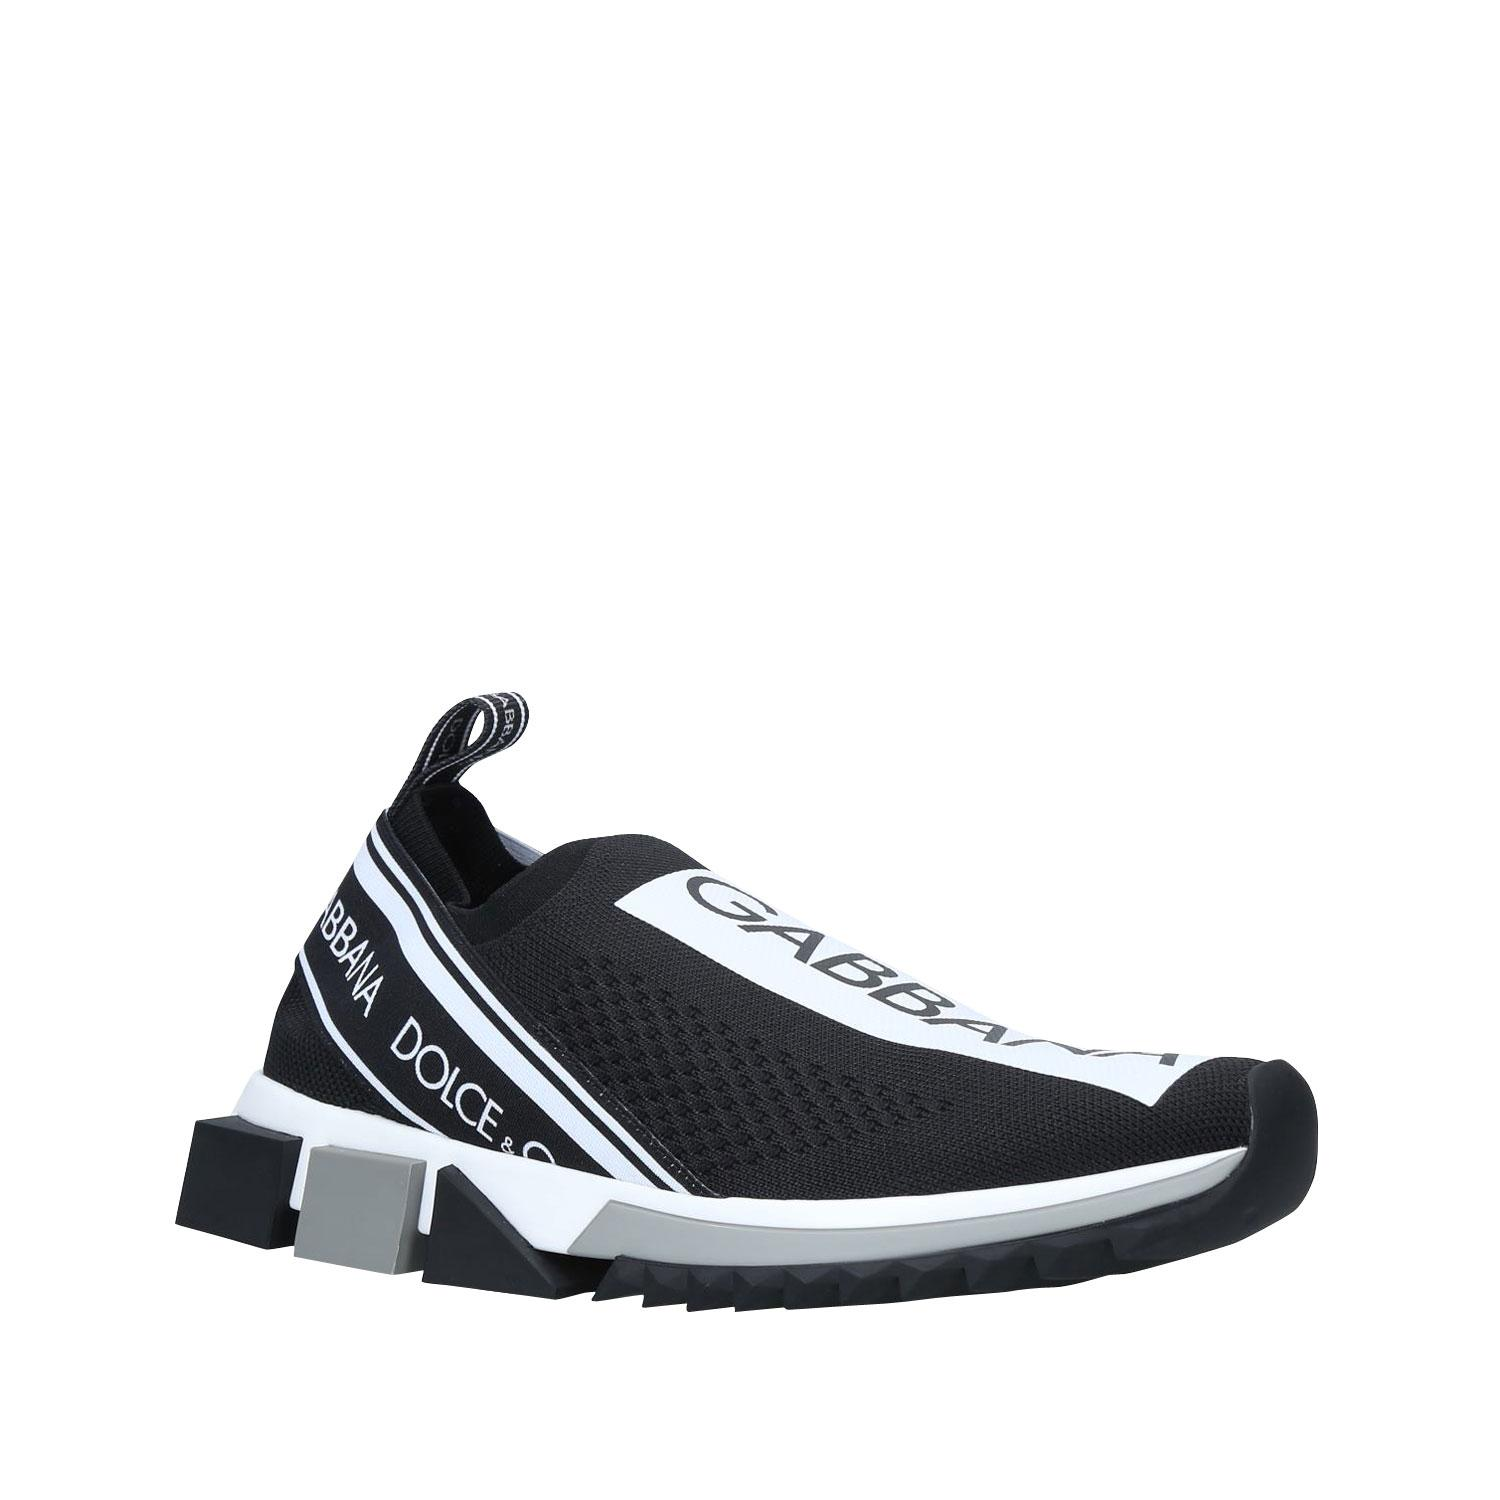 Atletica Running Shoes